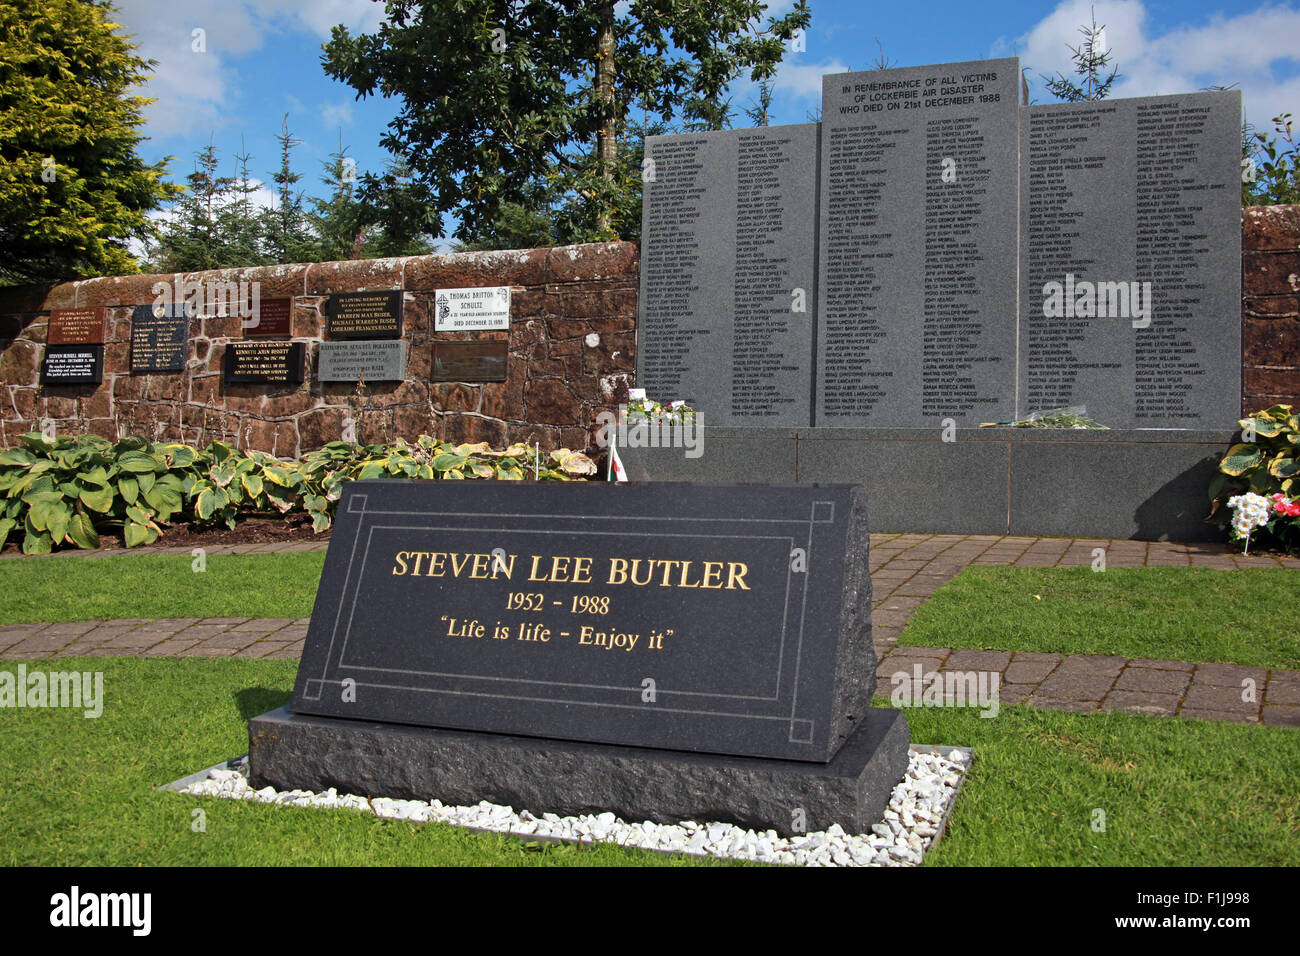 Lockerbie PanAm103 In Rememberance Memorial Steven Lee Butler - Life Is Life Enjoy It,Scotland - Stock Image